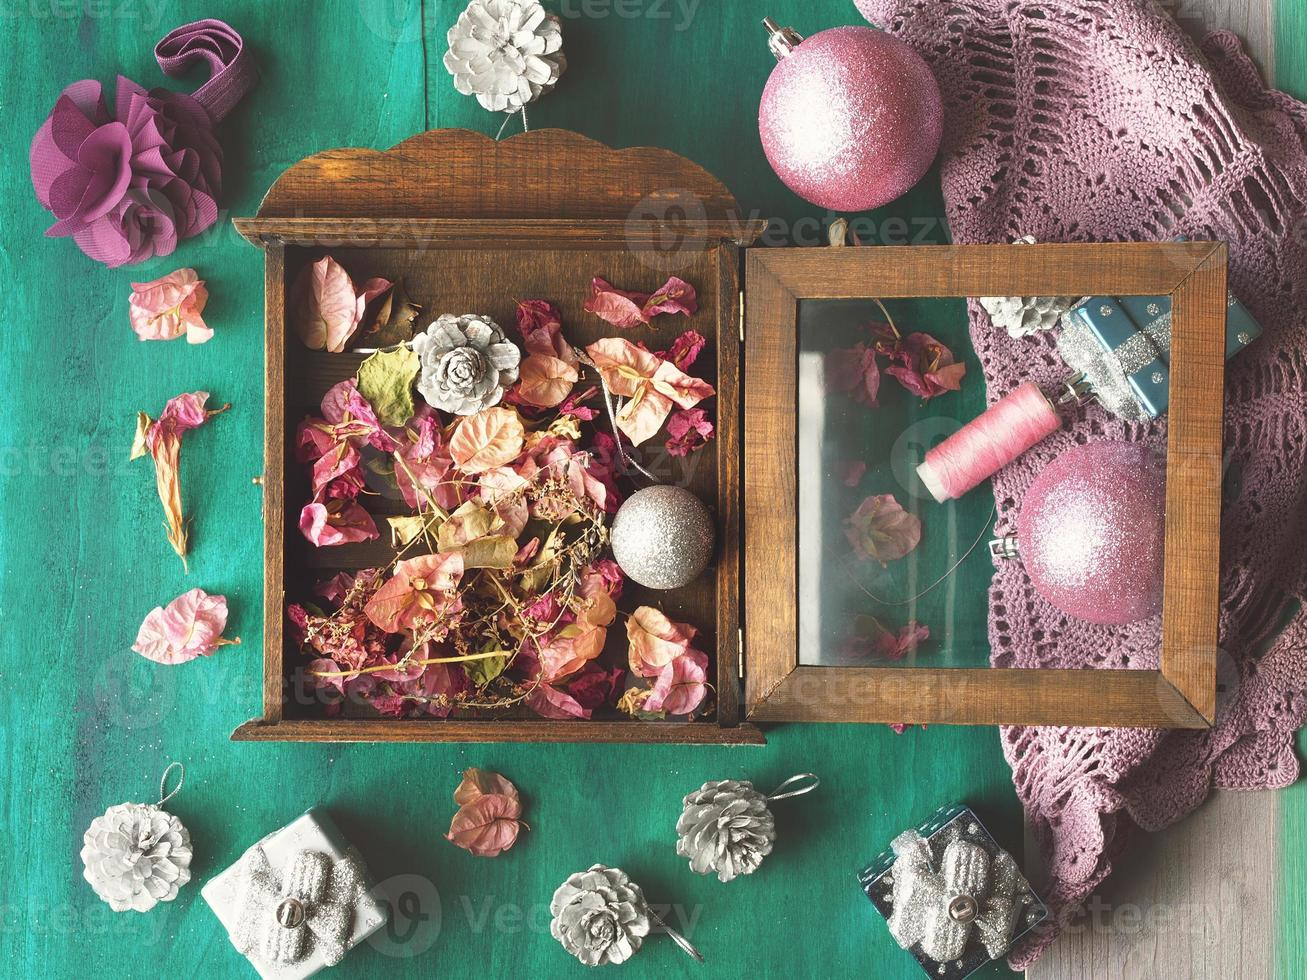 Christmas still life with flowers and decorations on green photo